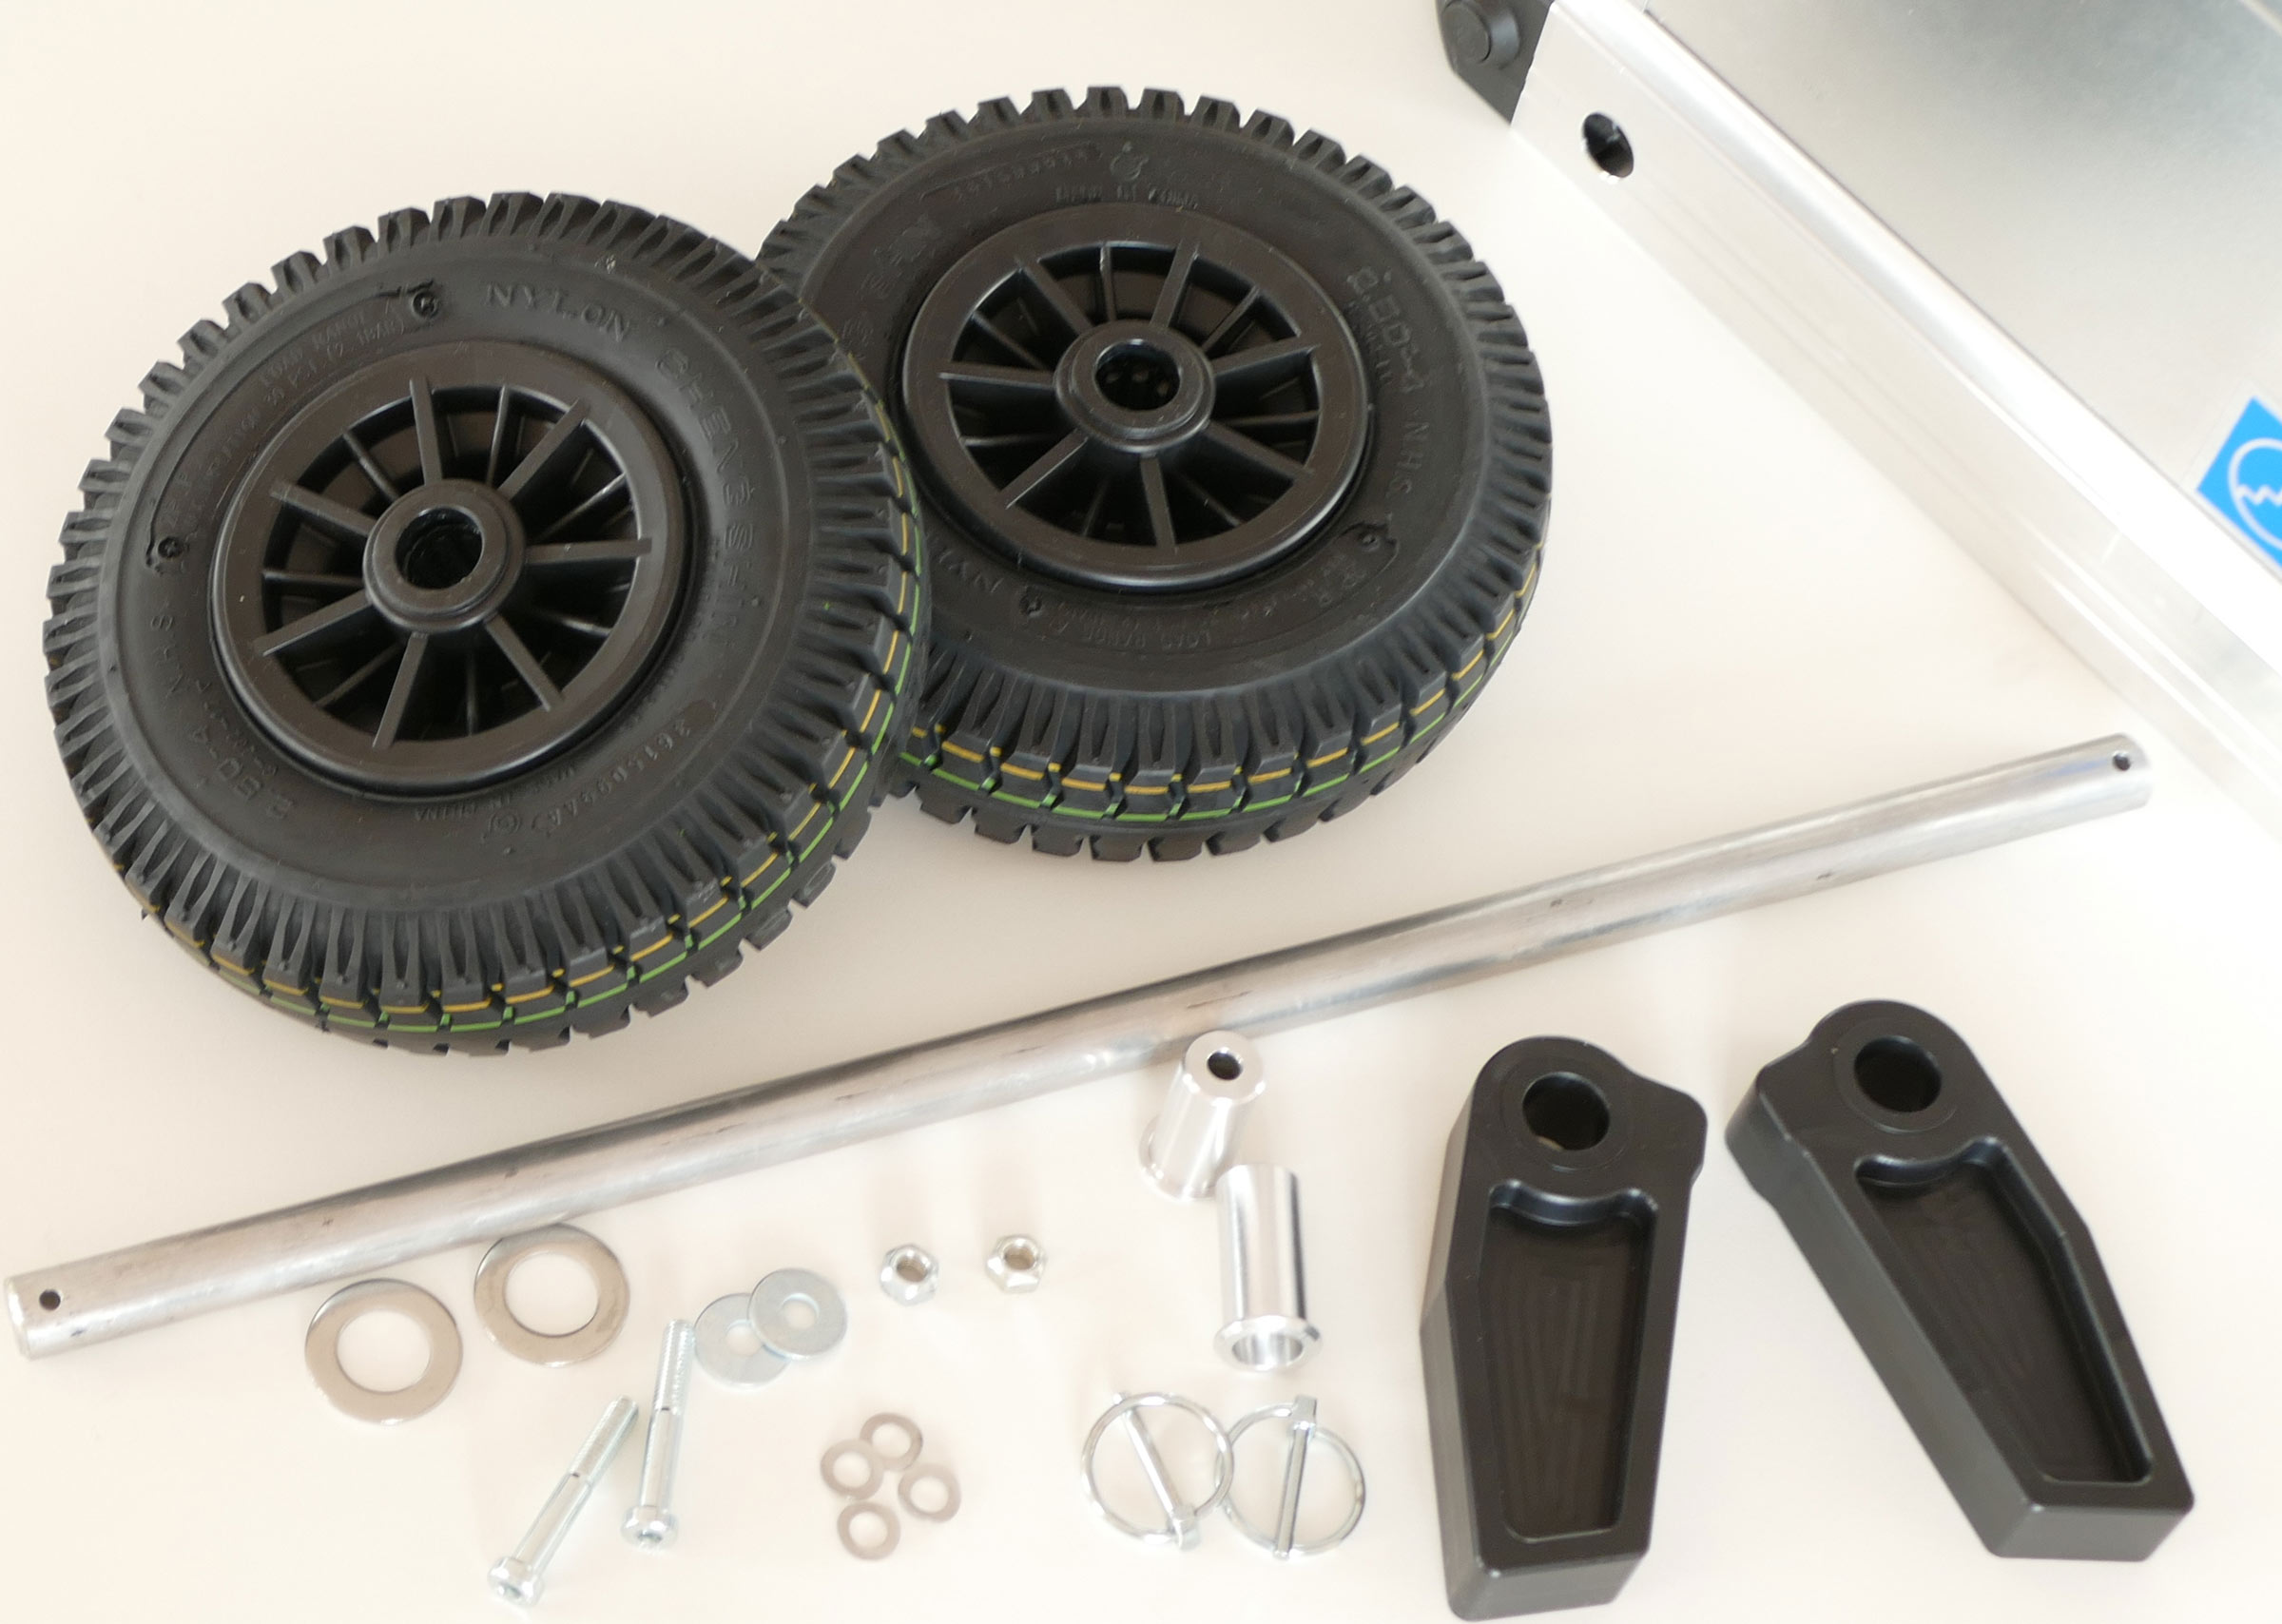 ZARGES Alubox Offroad Set 220 mm Typ 2